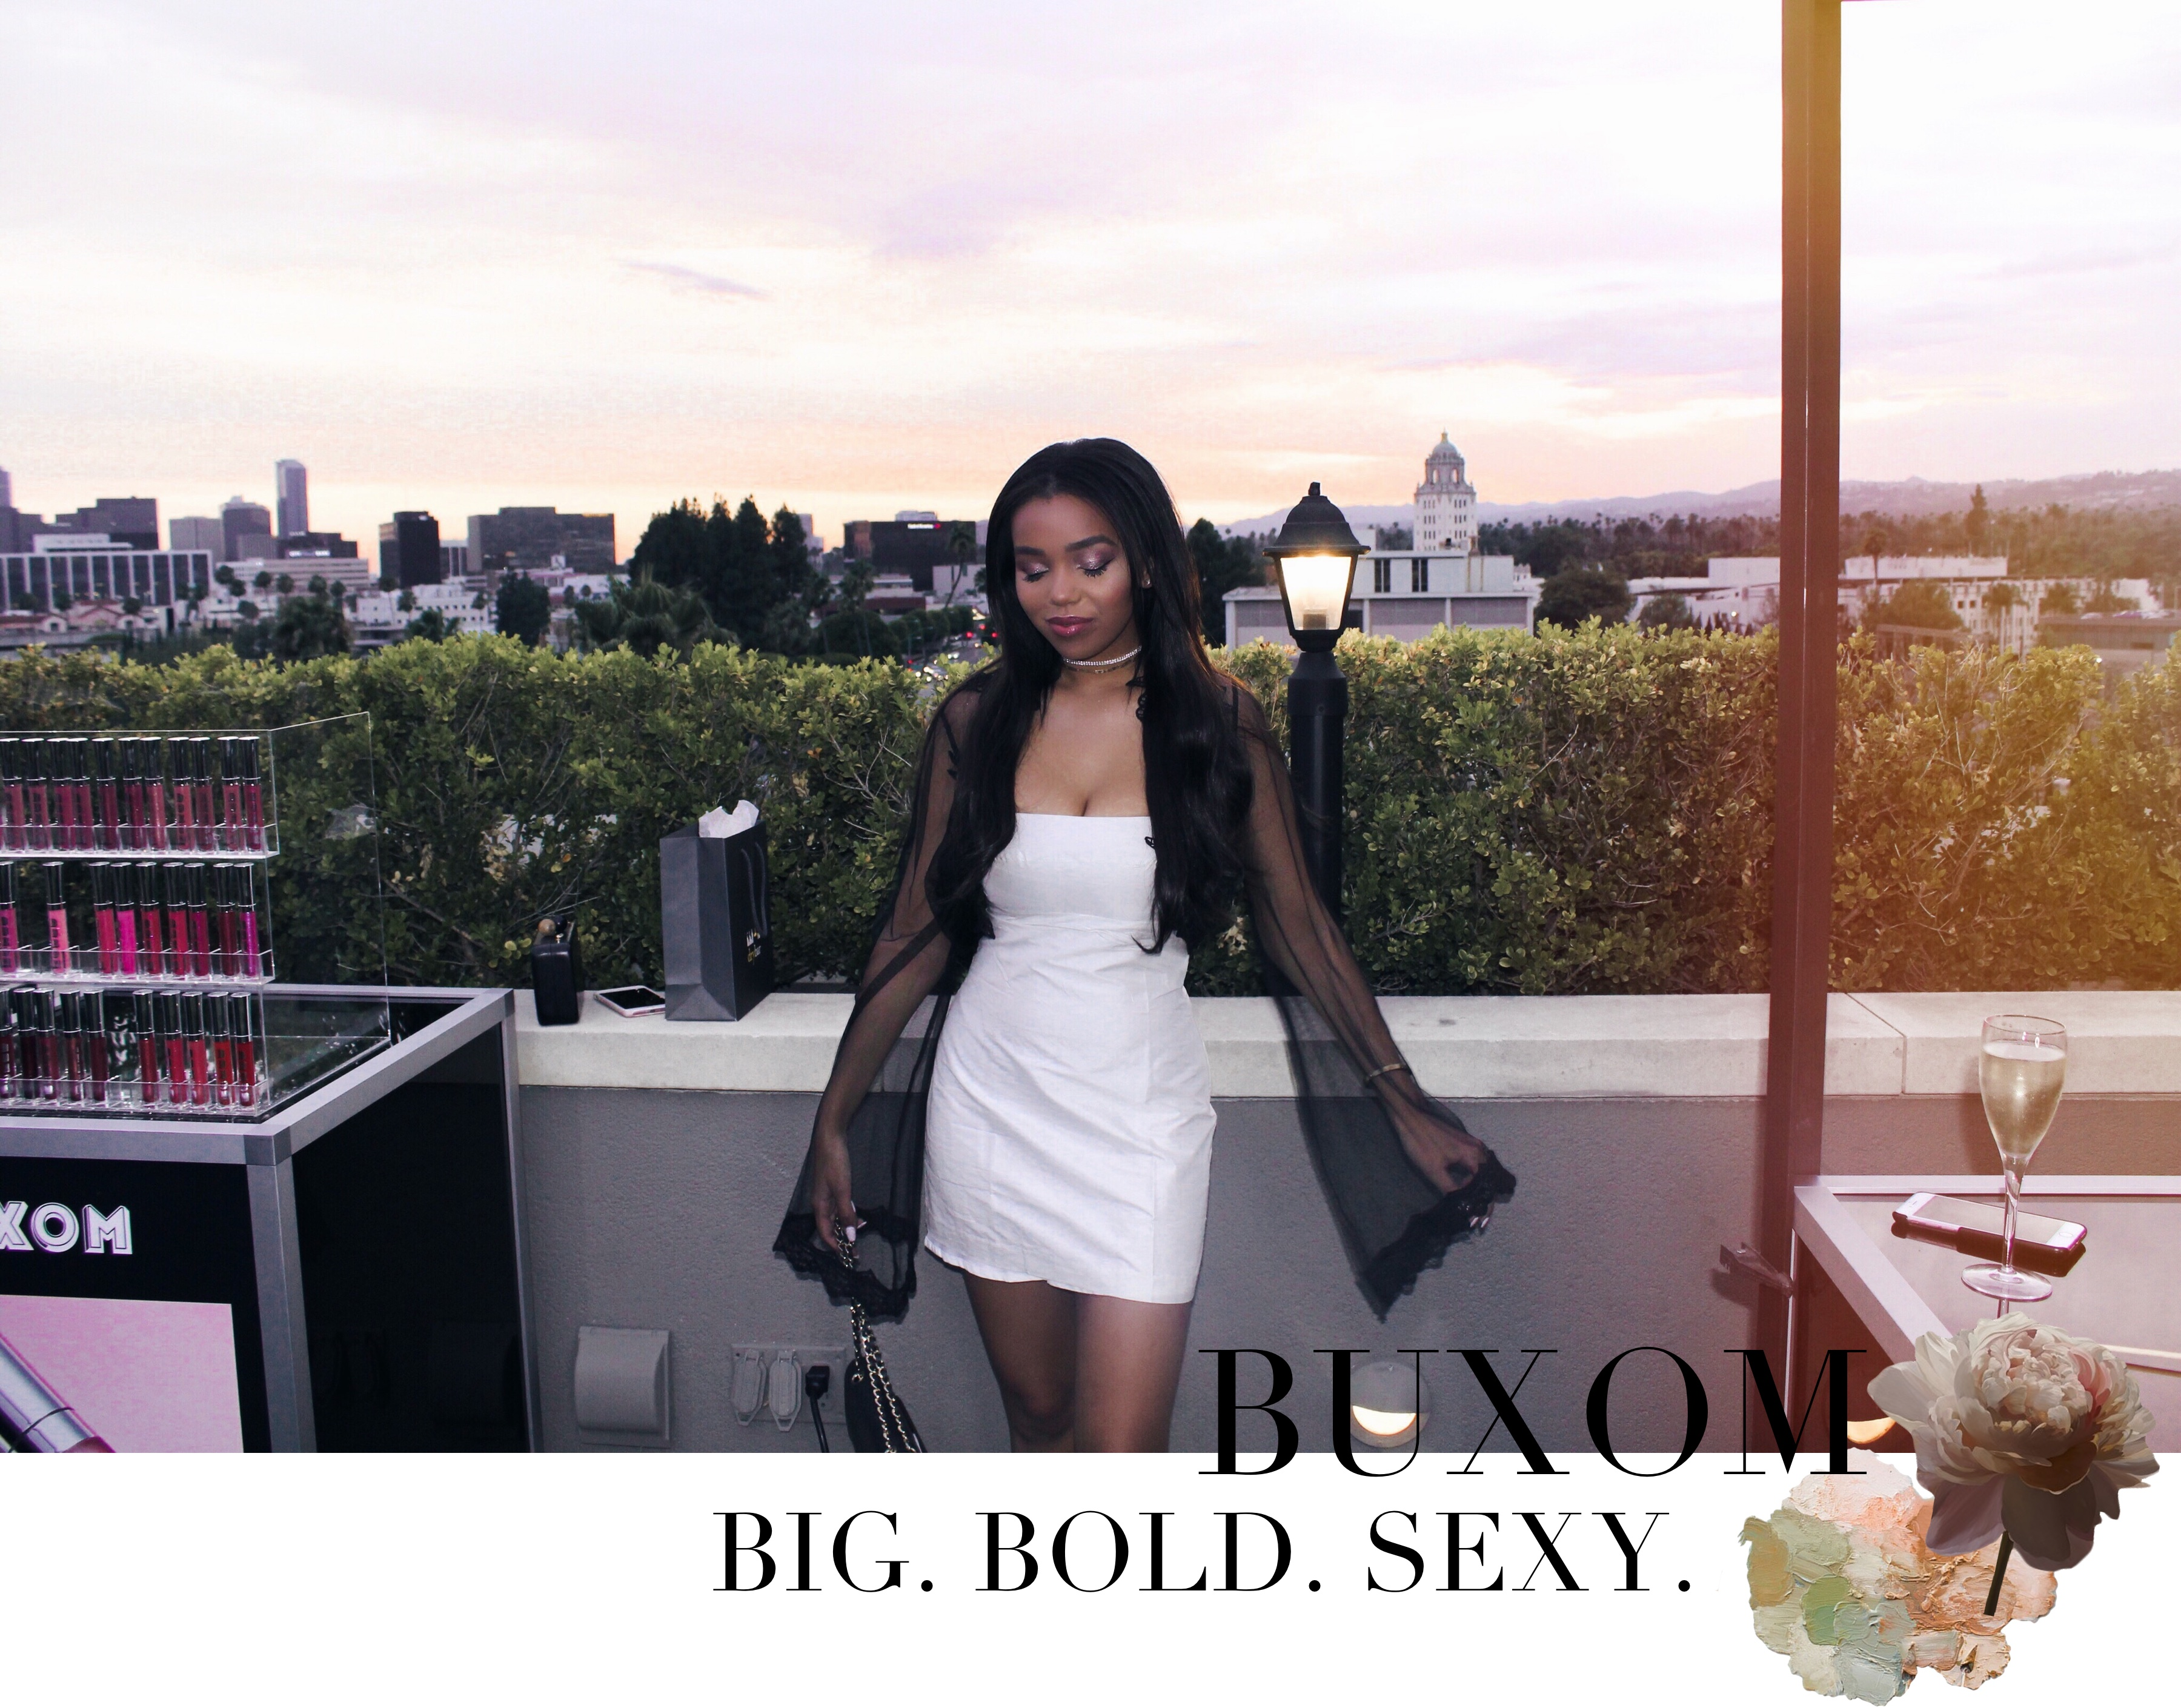 Buxom - Big, Sexy, Bold // Buxom Cosmetics New Product Launch in Beverly Hills California // Los Angeles Fashion Blogger Daphne Blunt: To Style, With Love